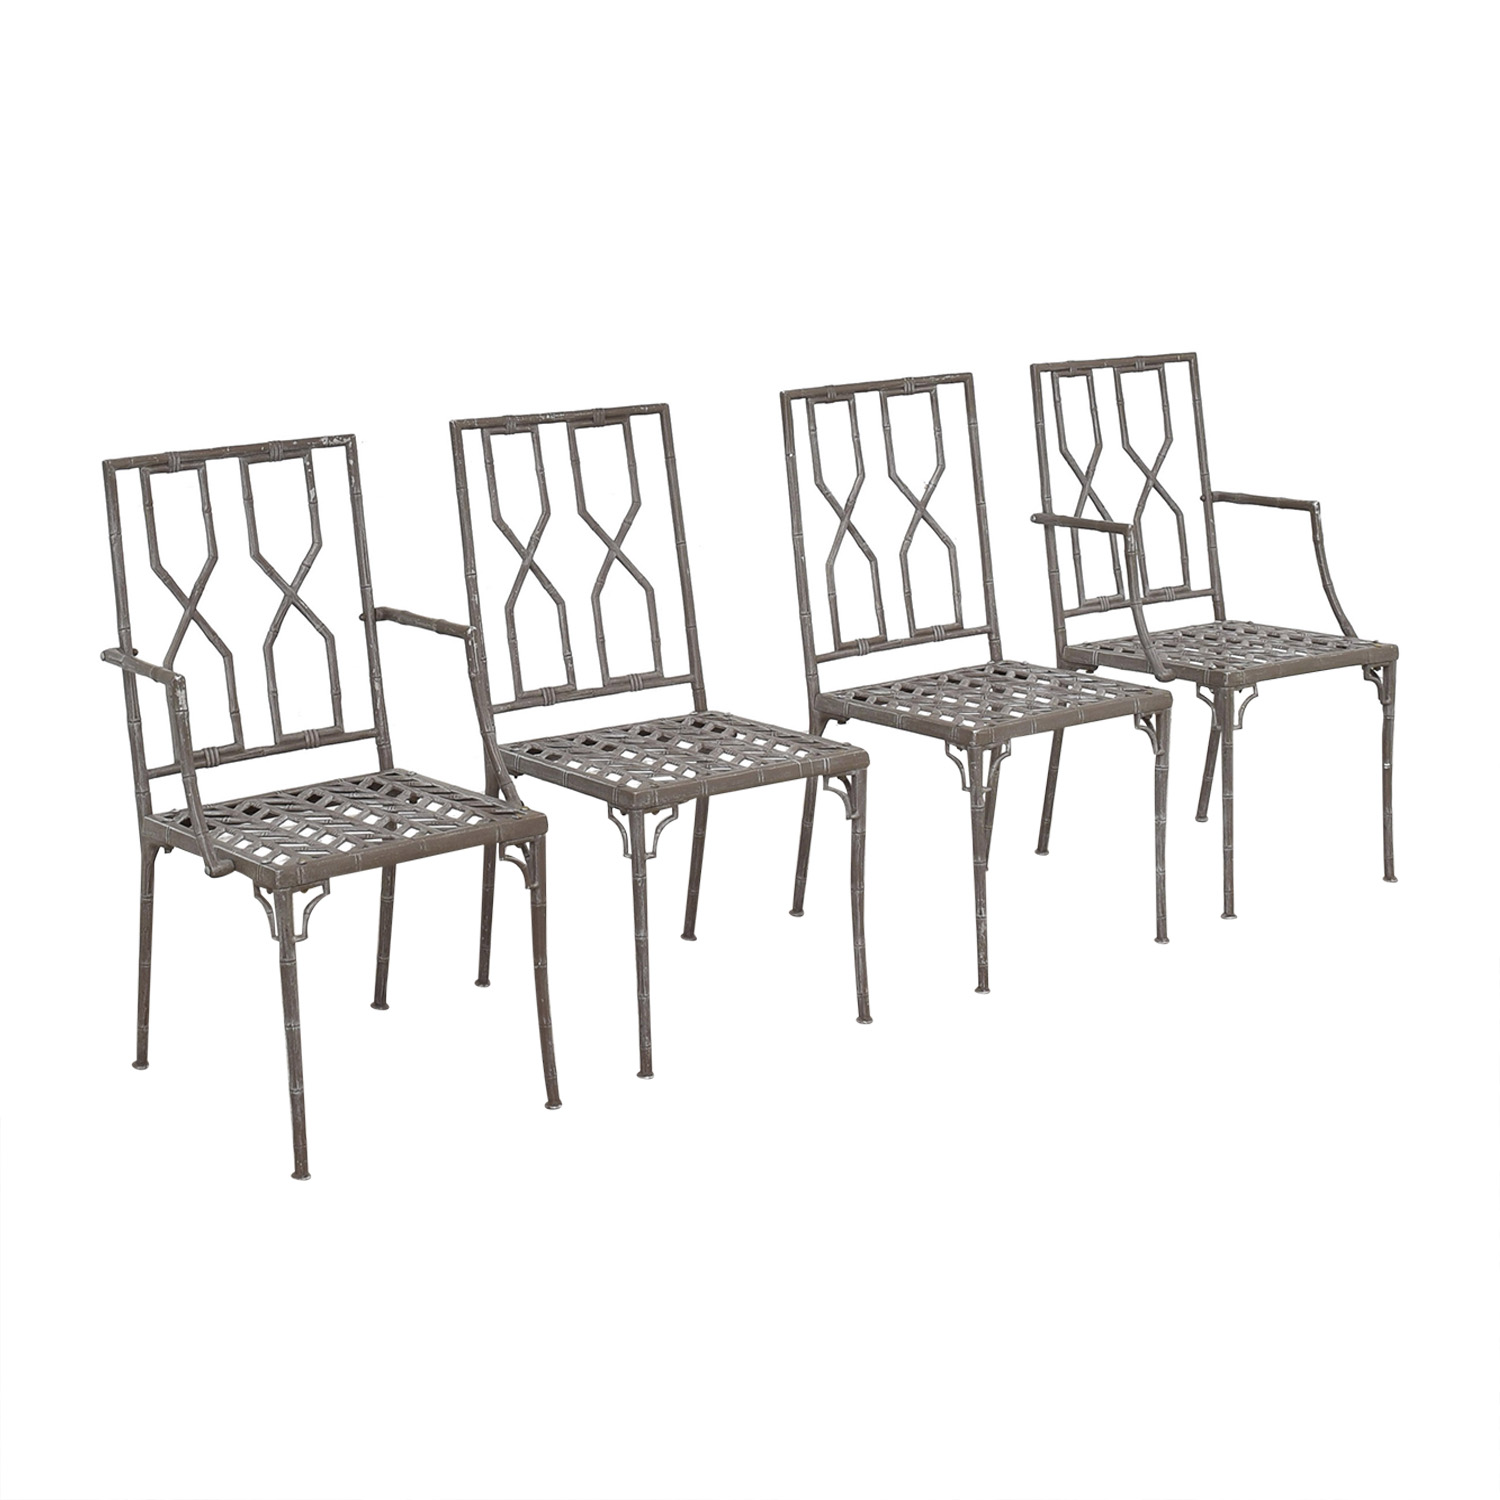 Hollywood Regency Chinoiserie Chairs Dining Chairs